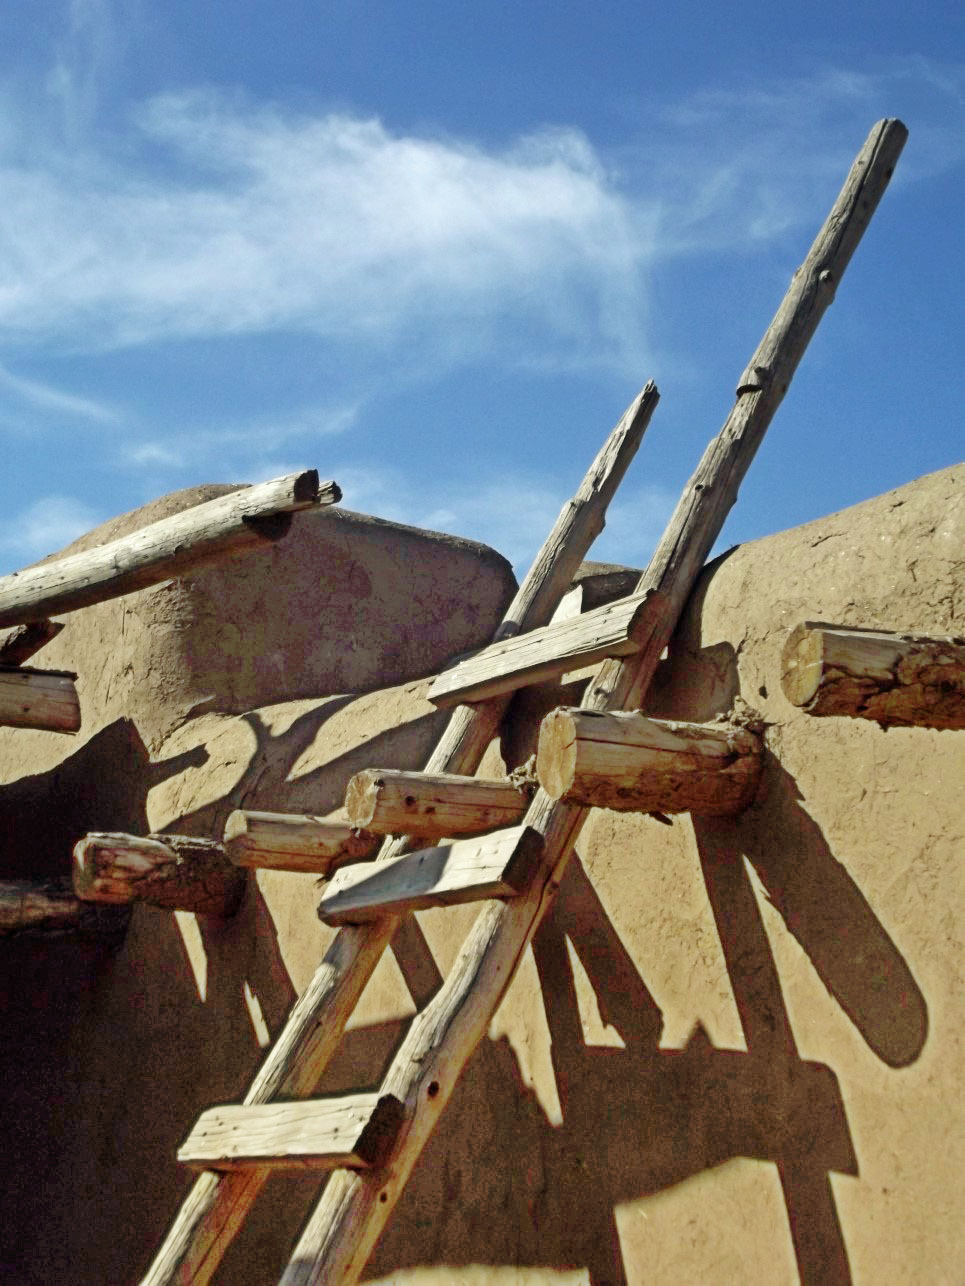 Adobe house with wooden ladder